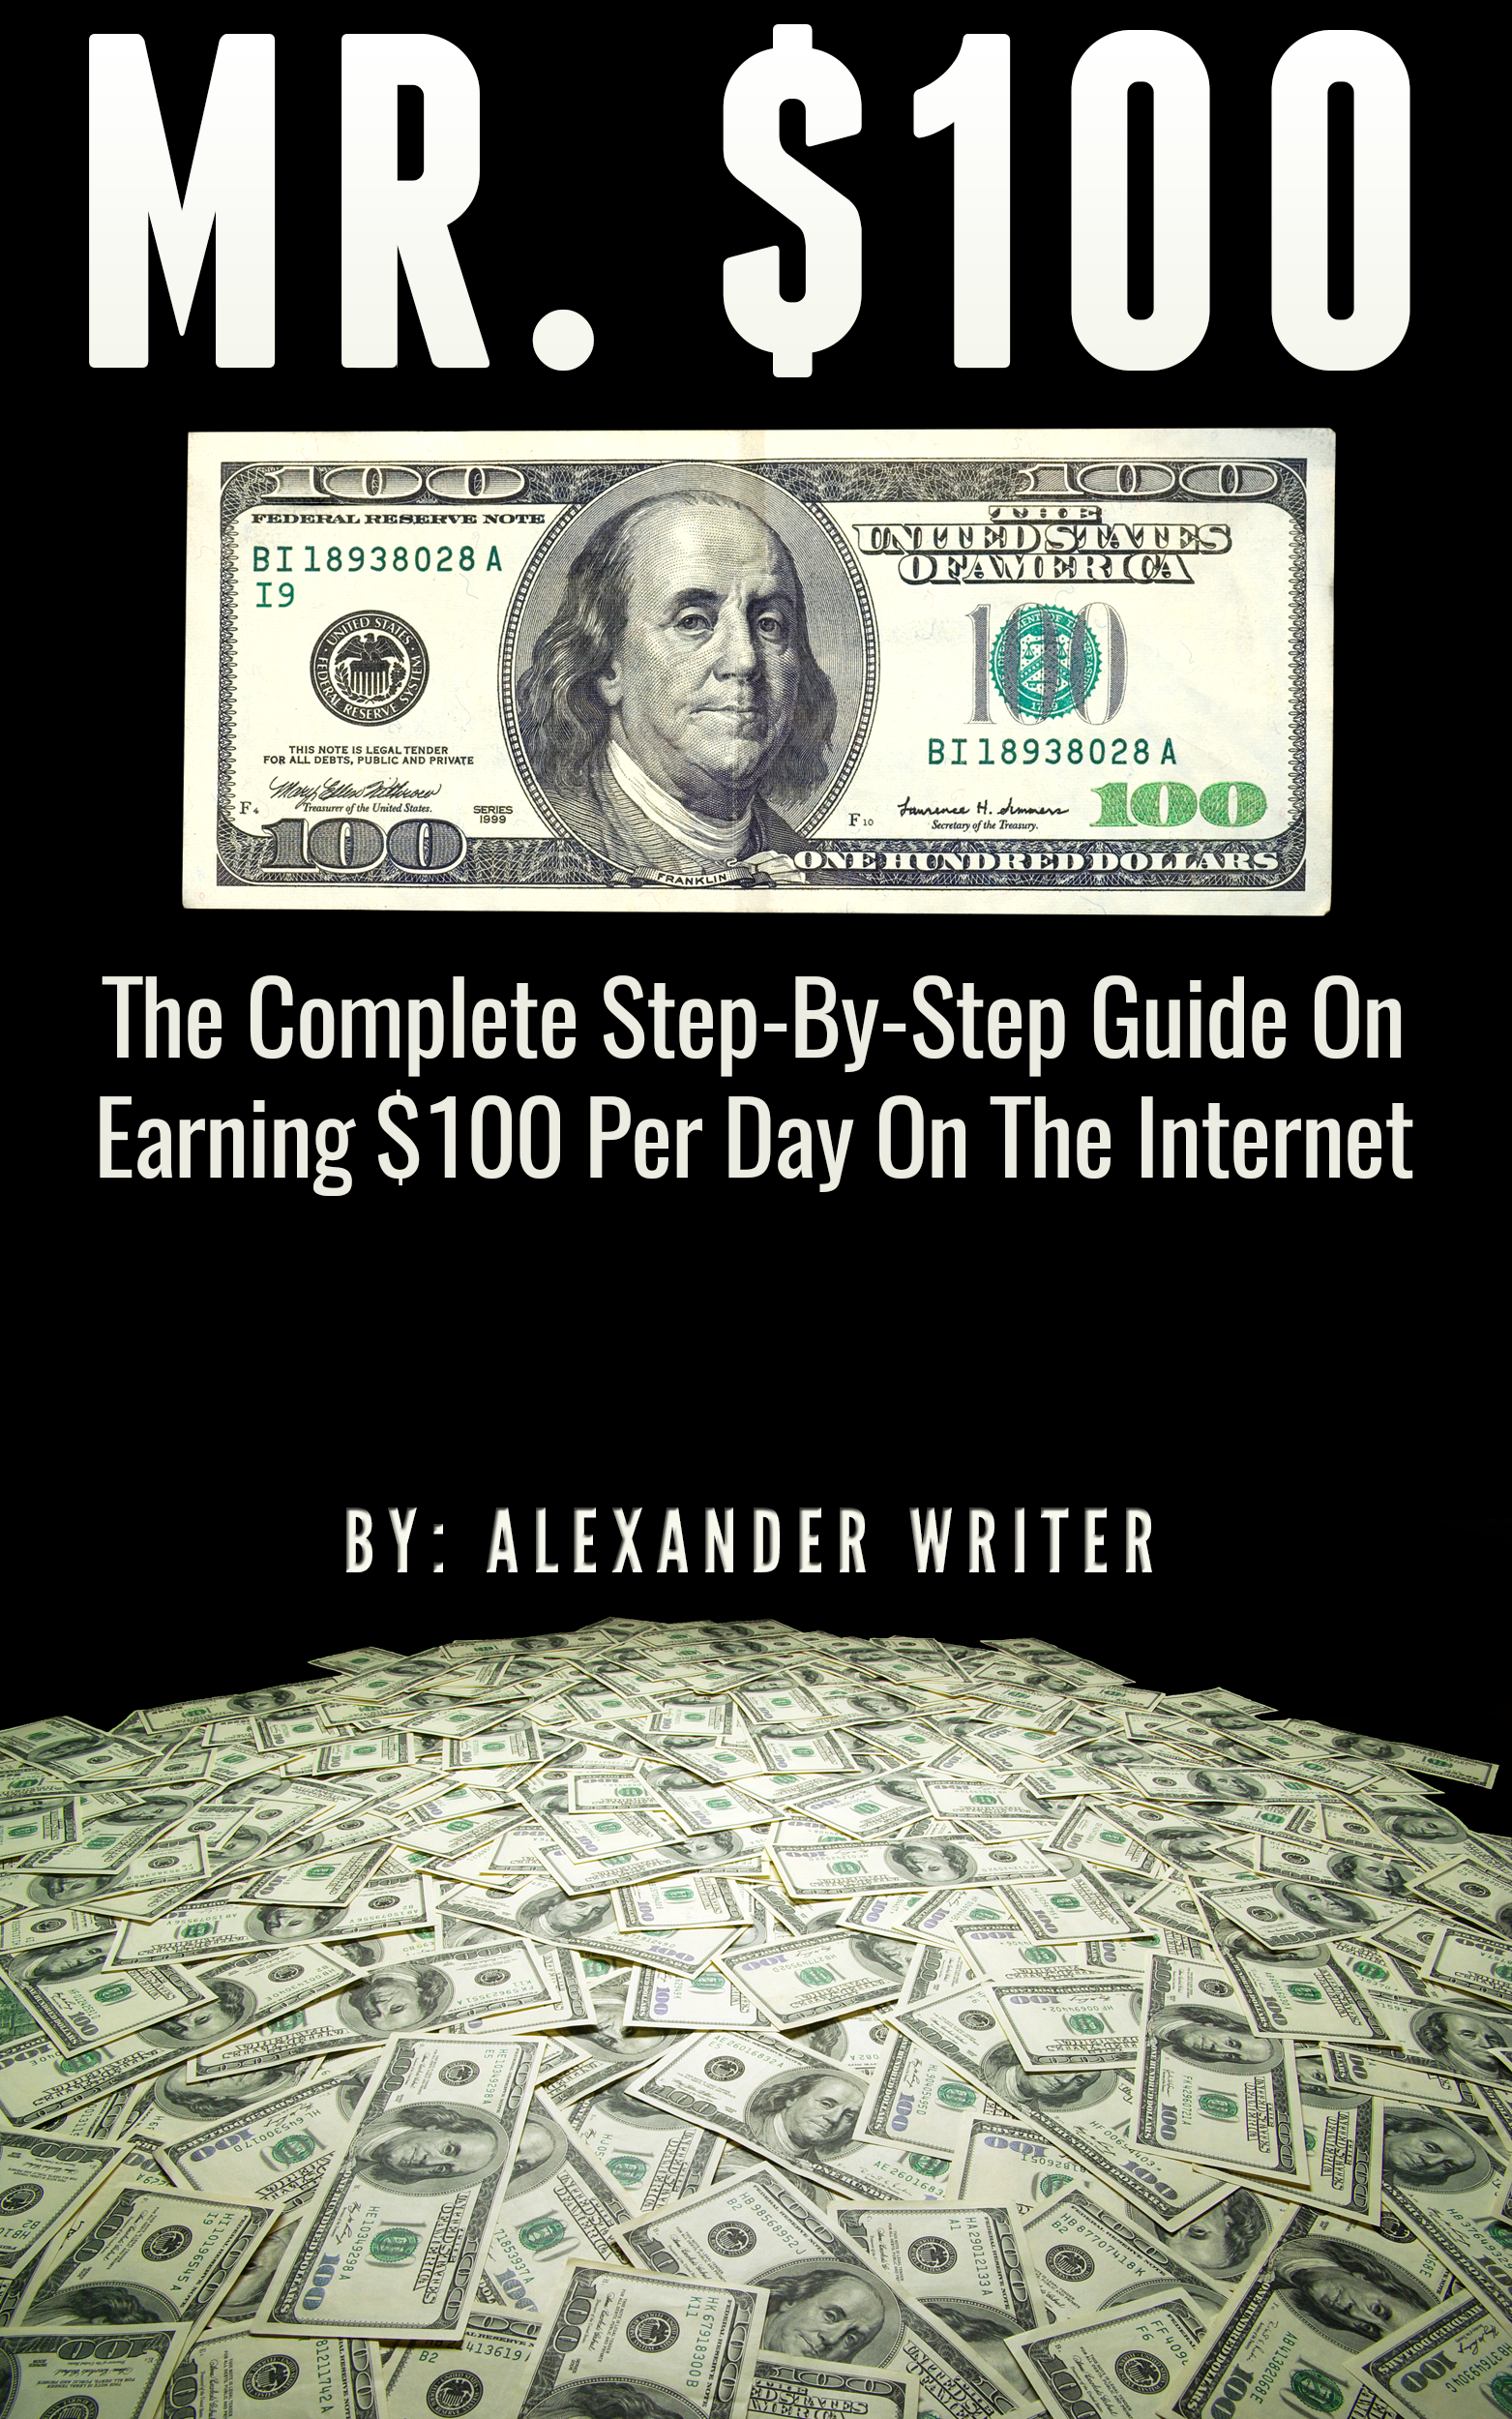 earn $100 per day online